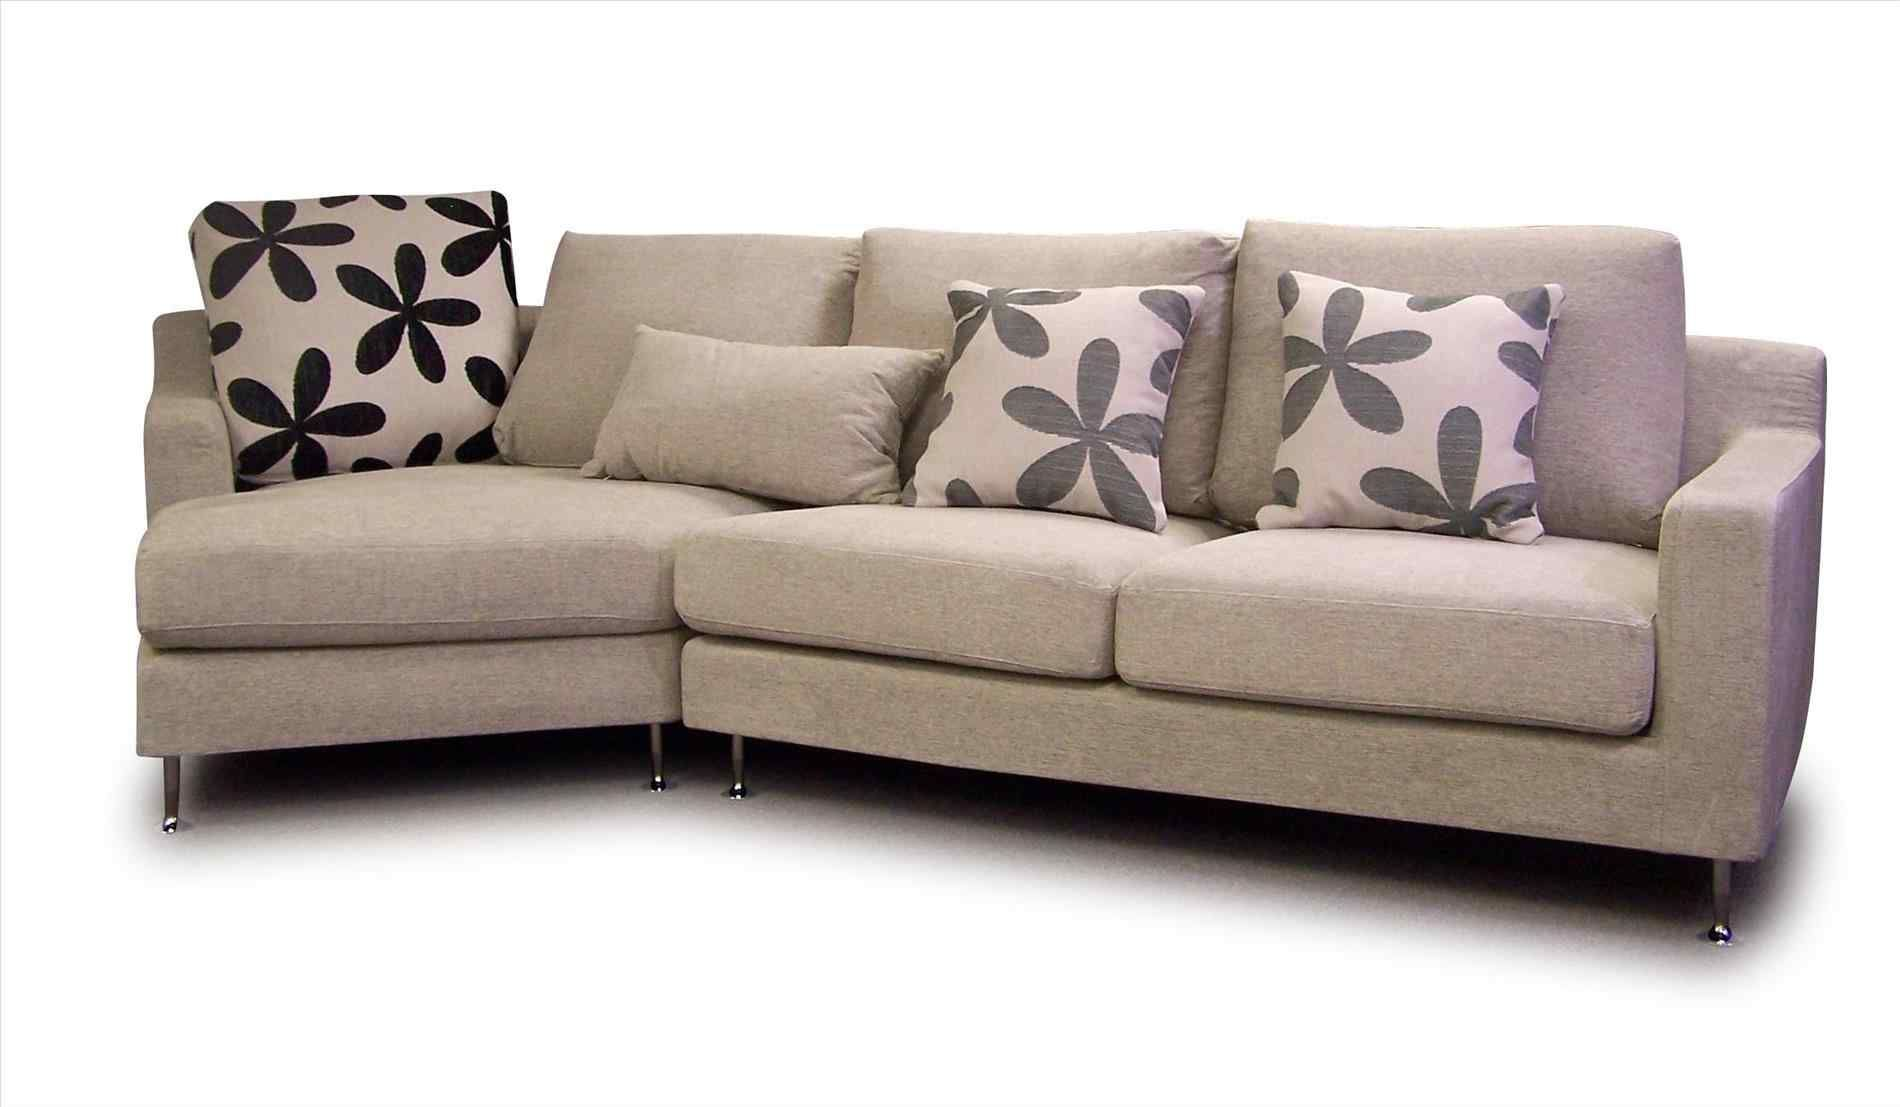 Sectional Sofas Online Your Own Sofa